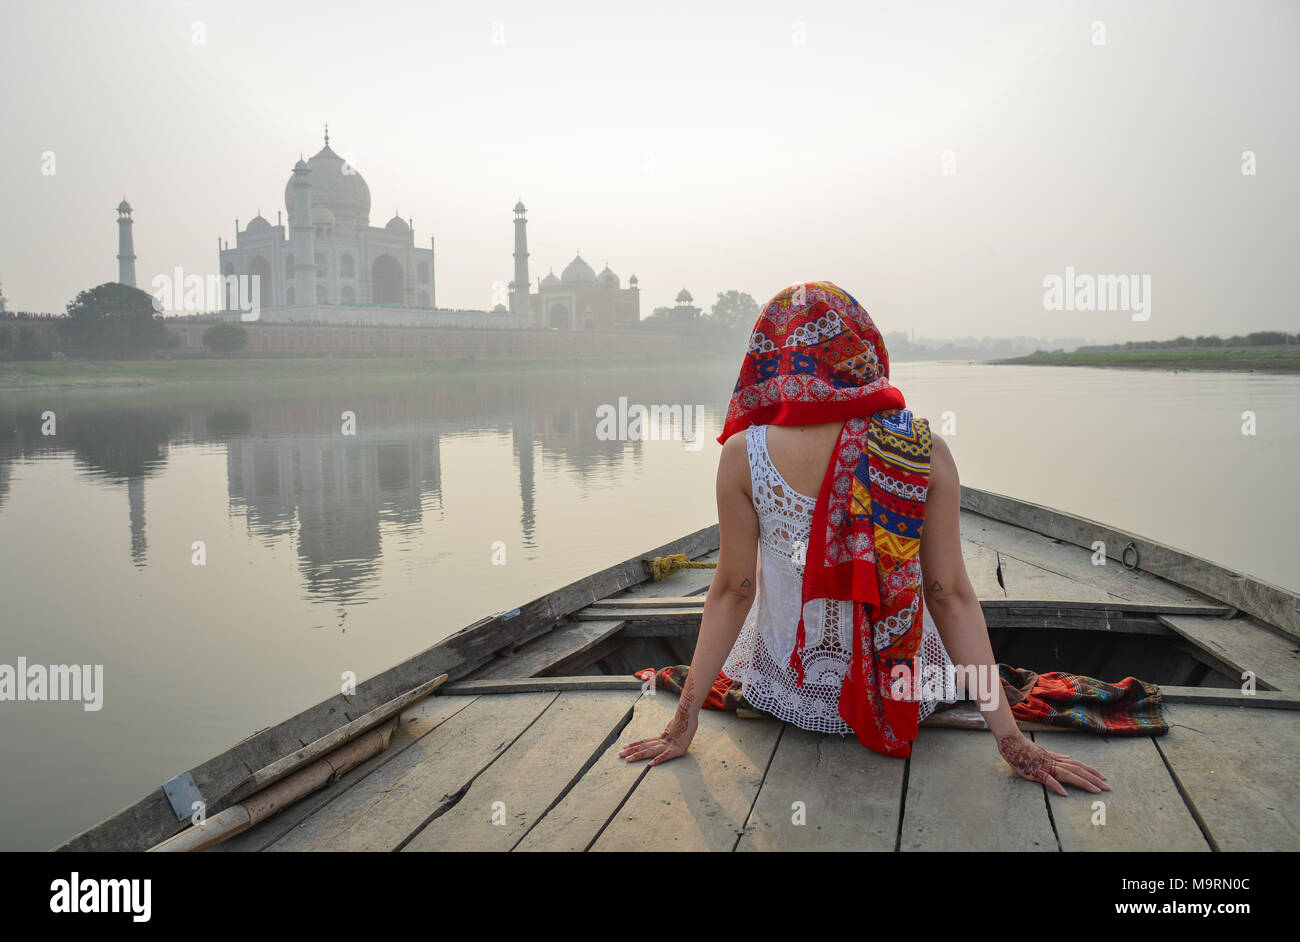 An Asian woman watching sunset over Taj Mahal from a wooden boat. Stock Photo